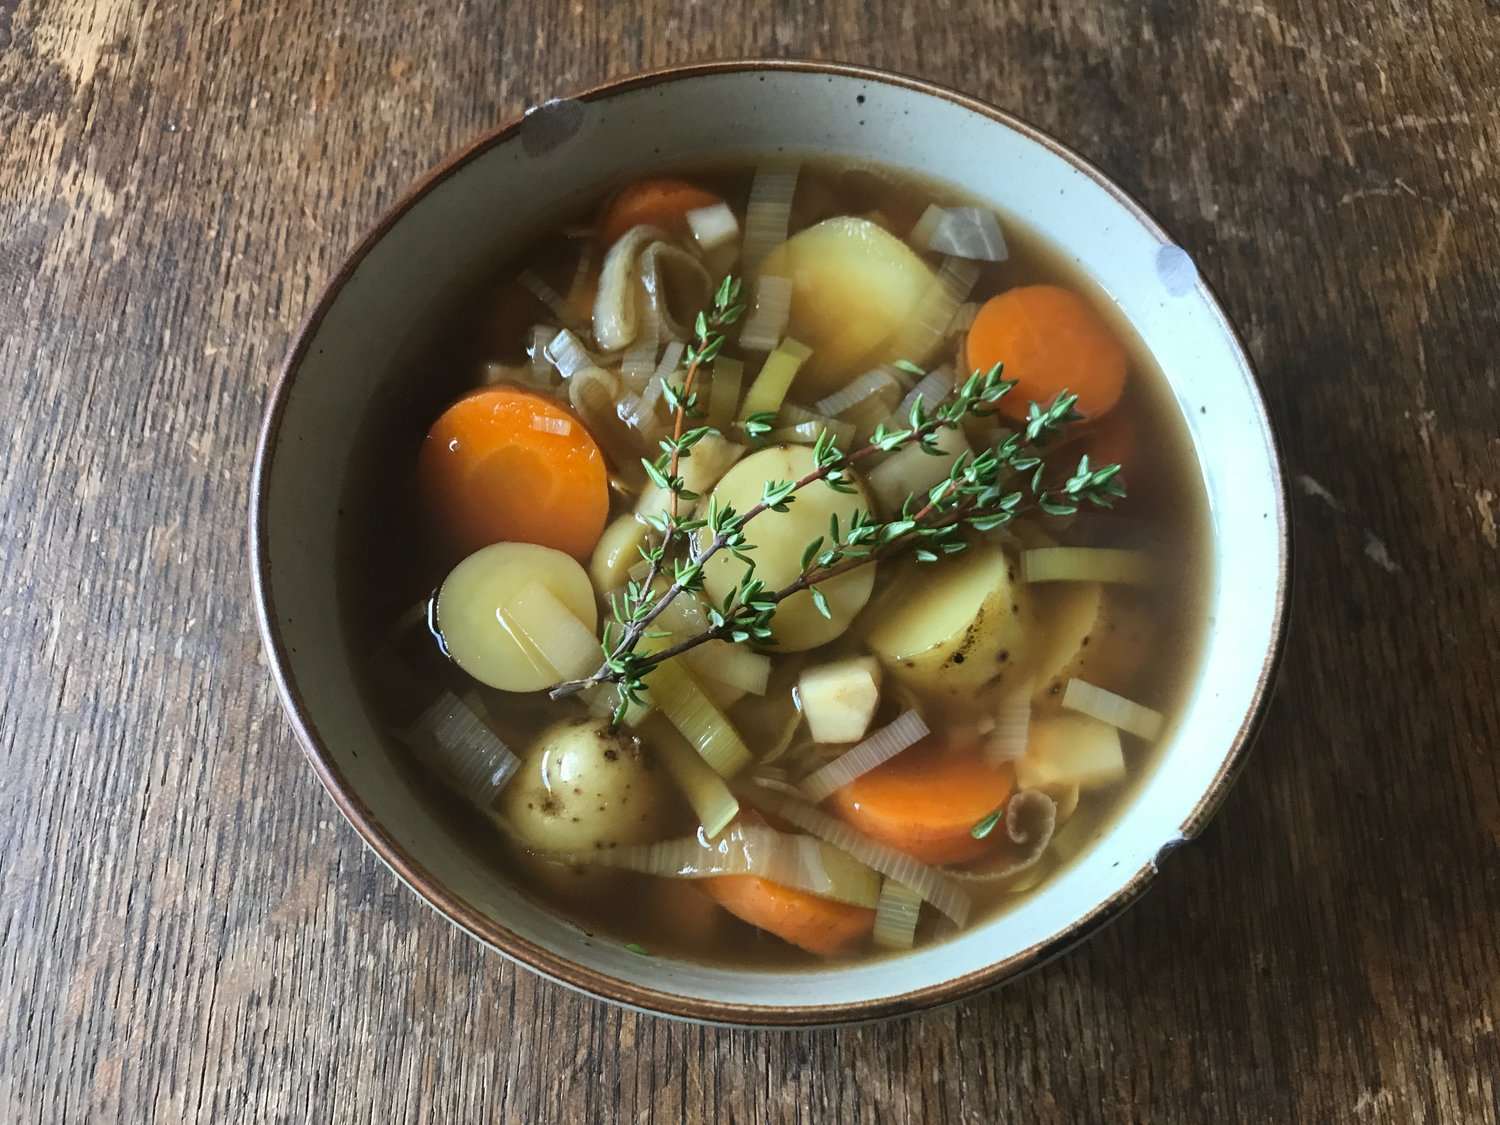 Comforting Vegetable Stew with Carrots, Onions, Potatoes, and Celeriac